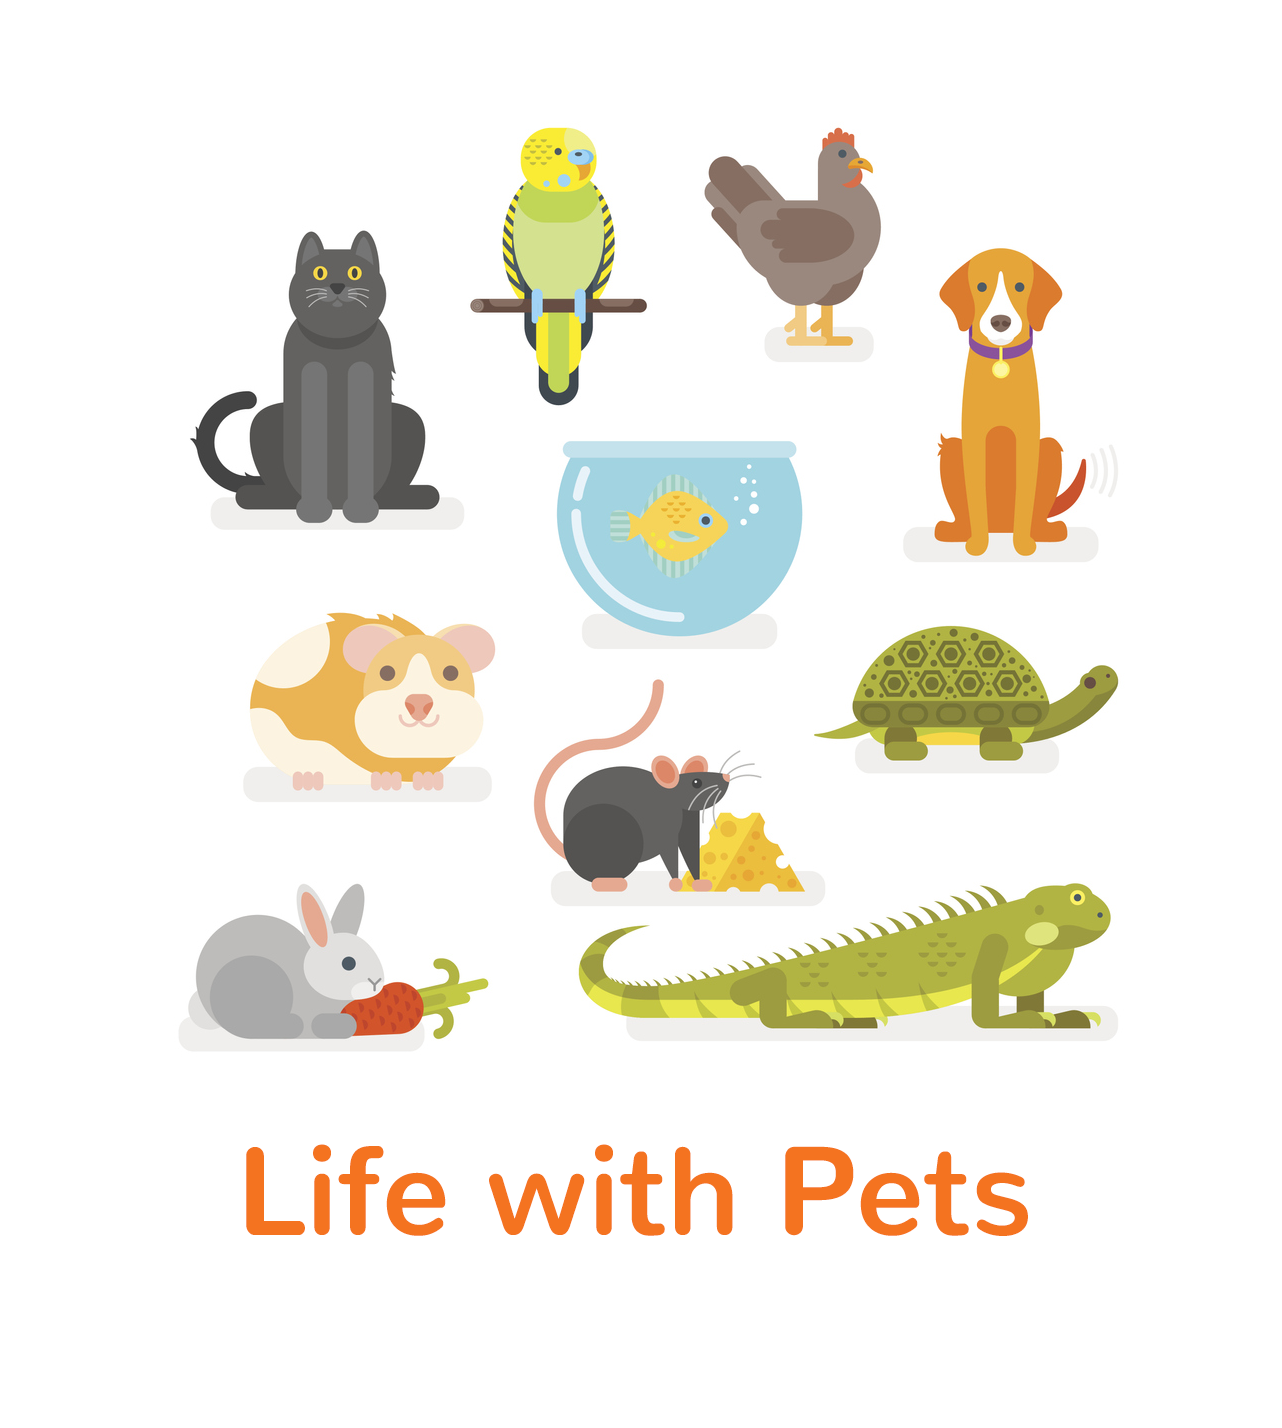 lifewithpets.png